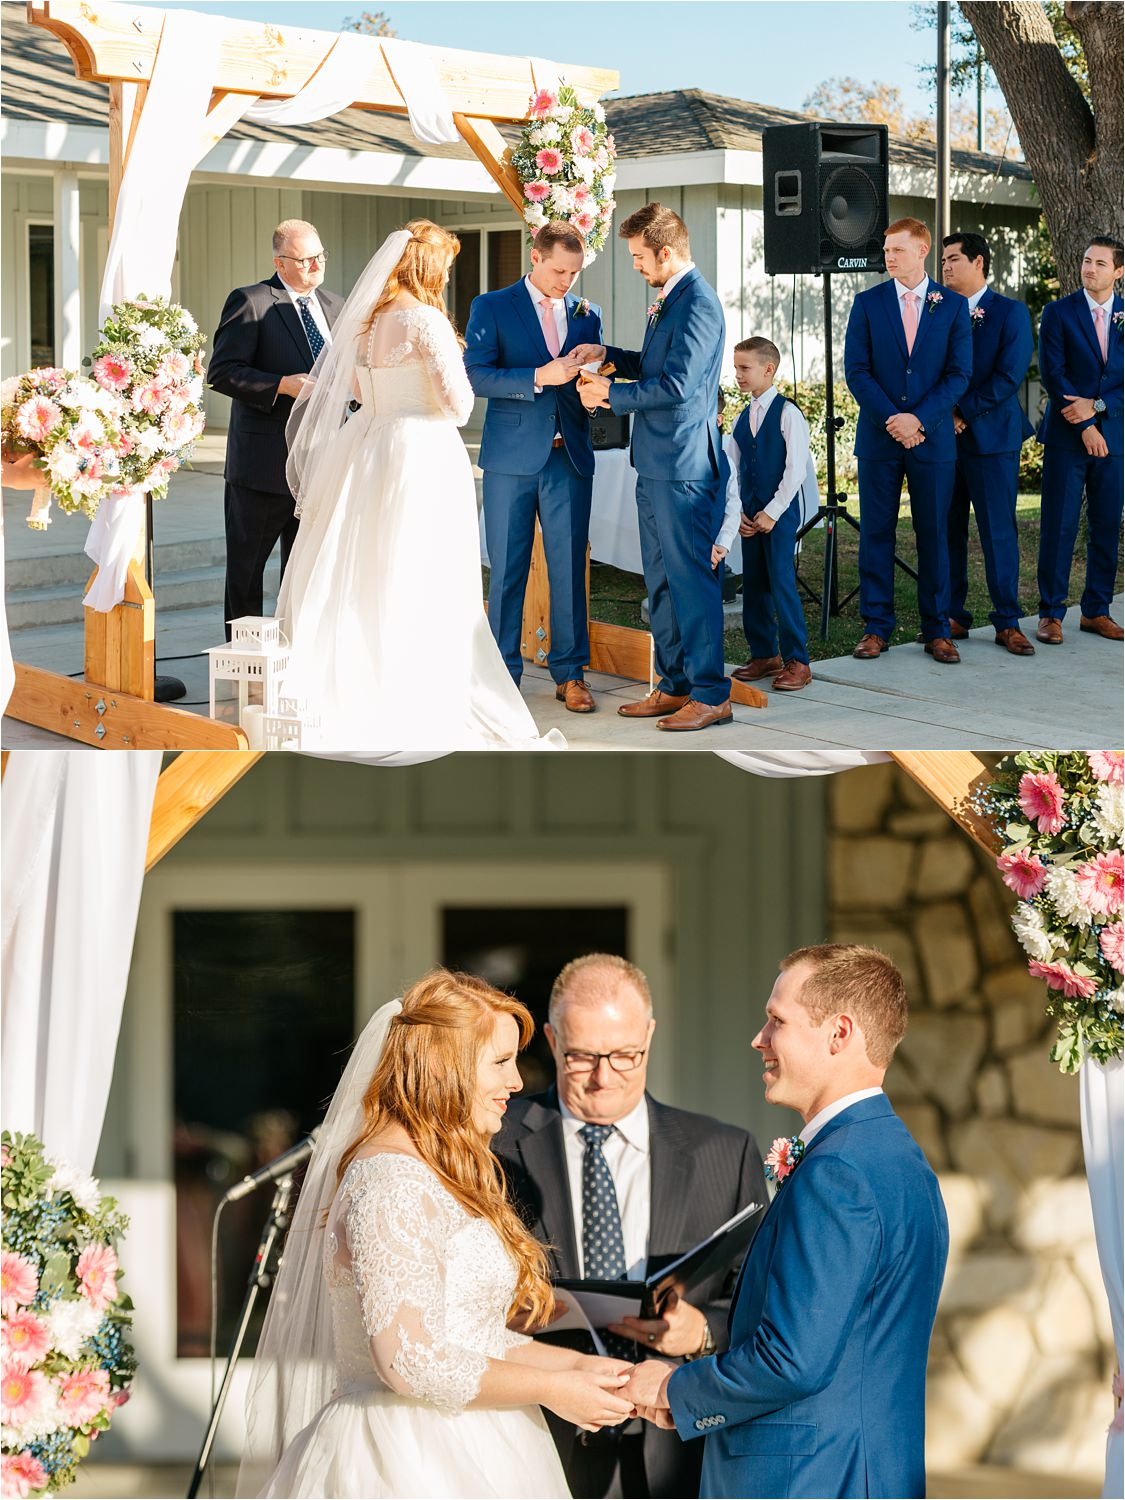 Exchanging of vows and rings - McCoy Equestrian Wedding - Chino Hills, CA - https://brittneyhannonphotography.com